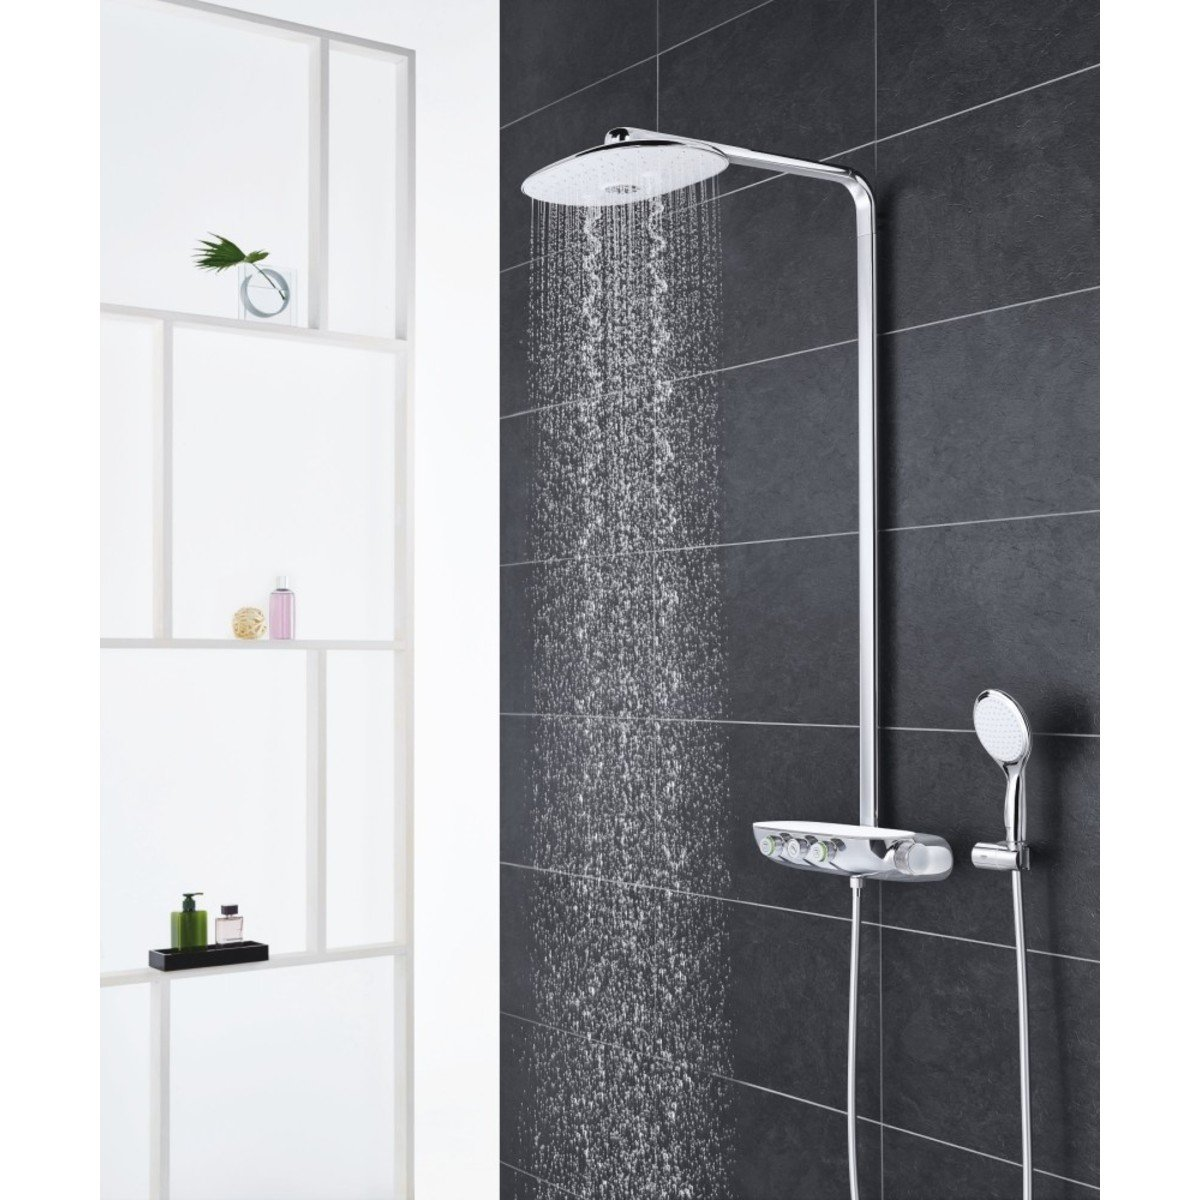 grohe rainshower smartcontrol colonne de douche avec robinet de douche thermostatique 360 duo. Black Bedroom Furniture Sets. Home Design Ideas